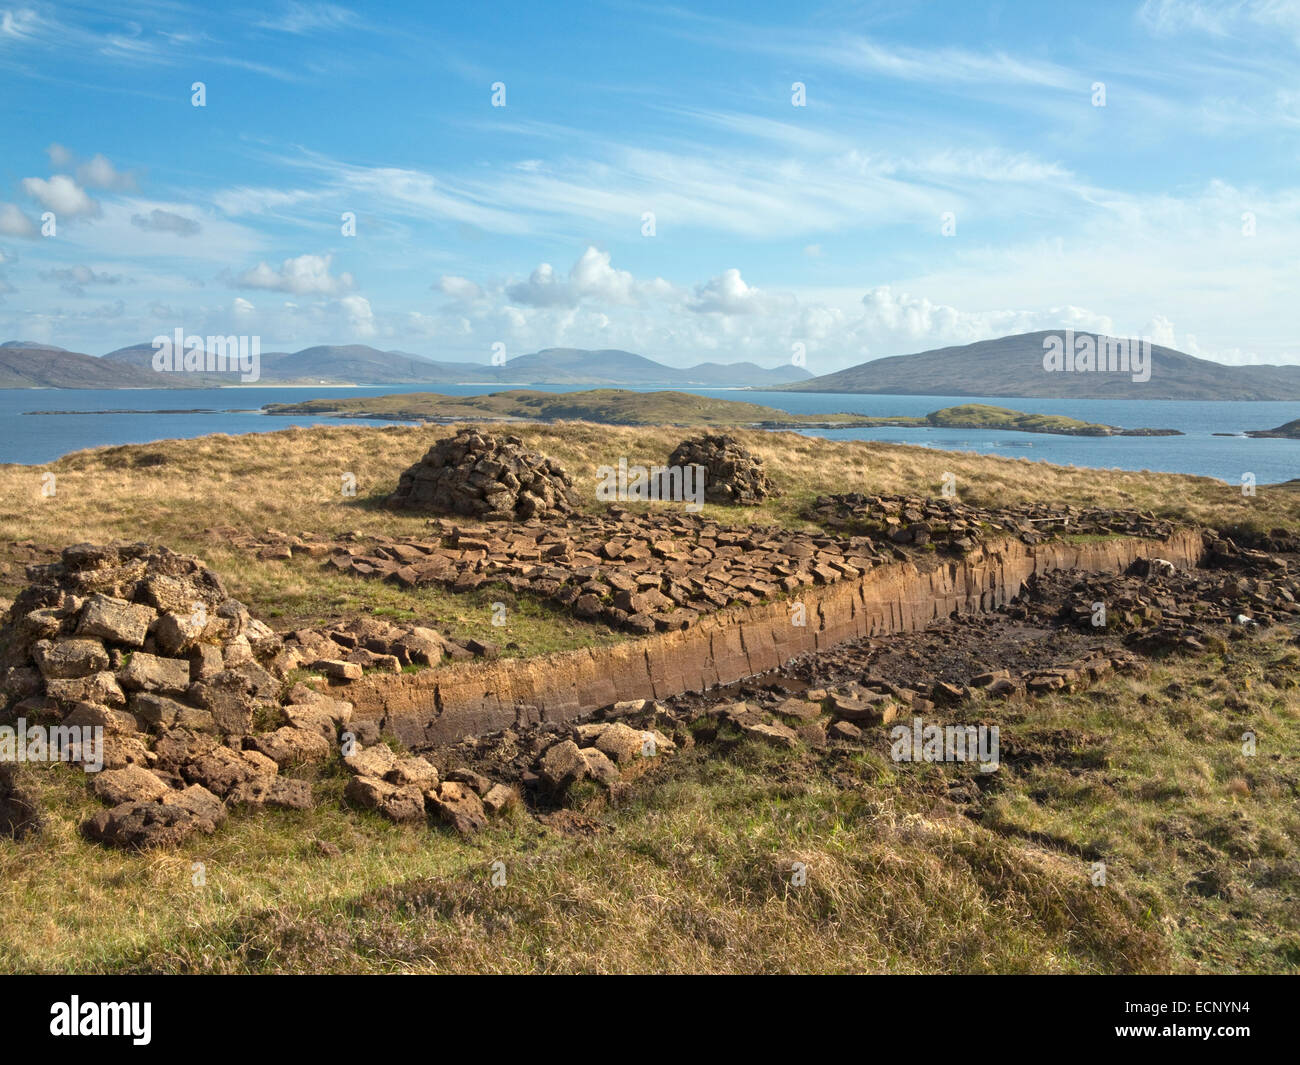 Bank for peat cutting along road near Meavaig on North Harris, Isle of Harris, Outer Hebrides, Scotland, AGPix 2031 Stock Photo